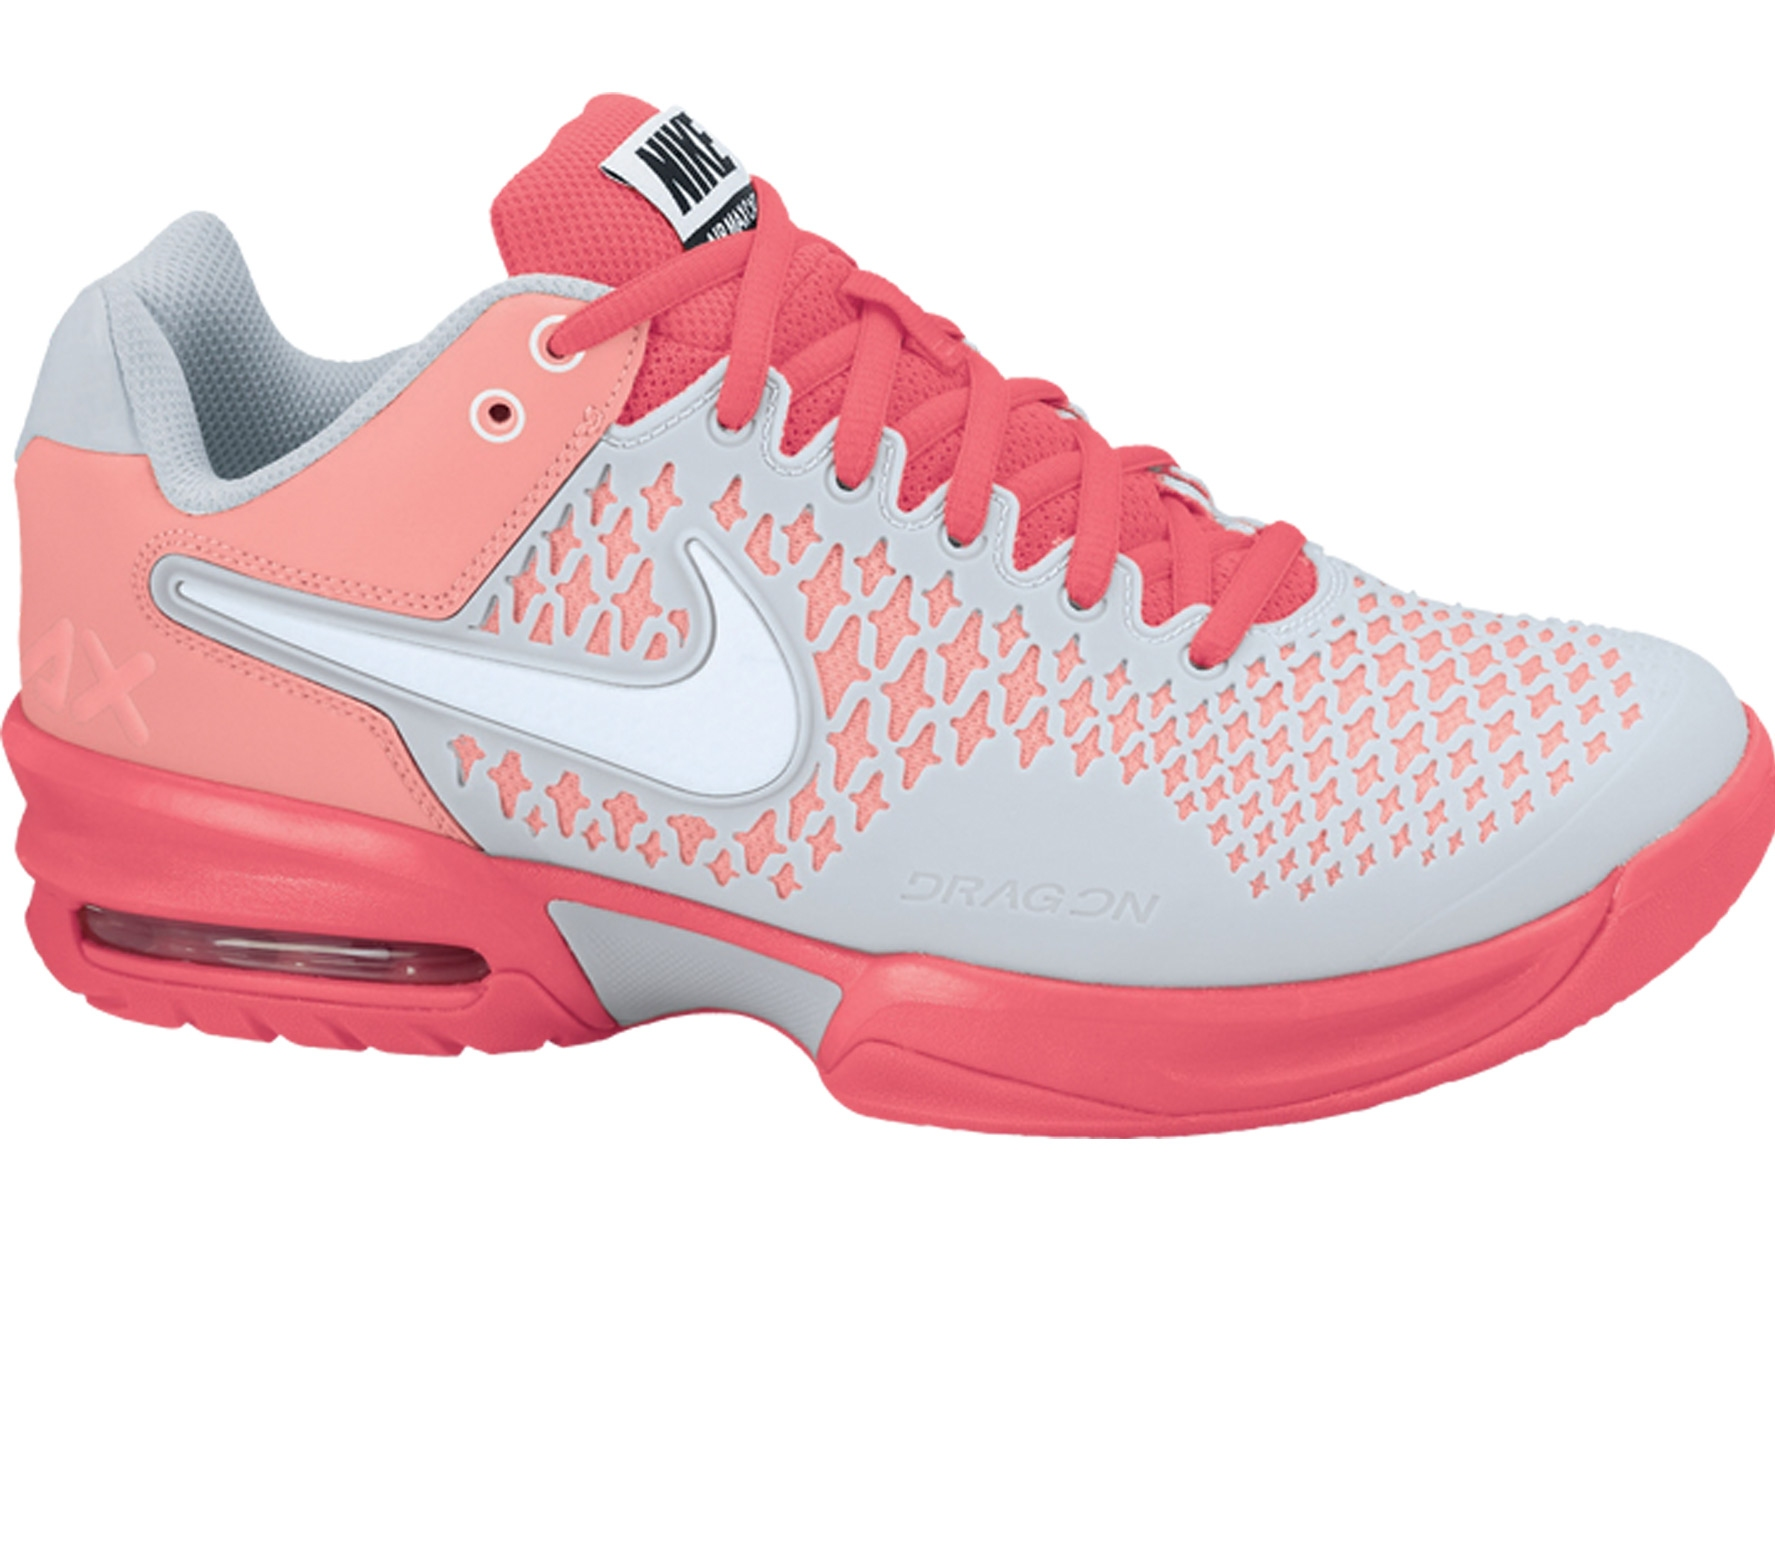 Nike - Tennis shoes Woman Air Max Cage - FA13